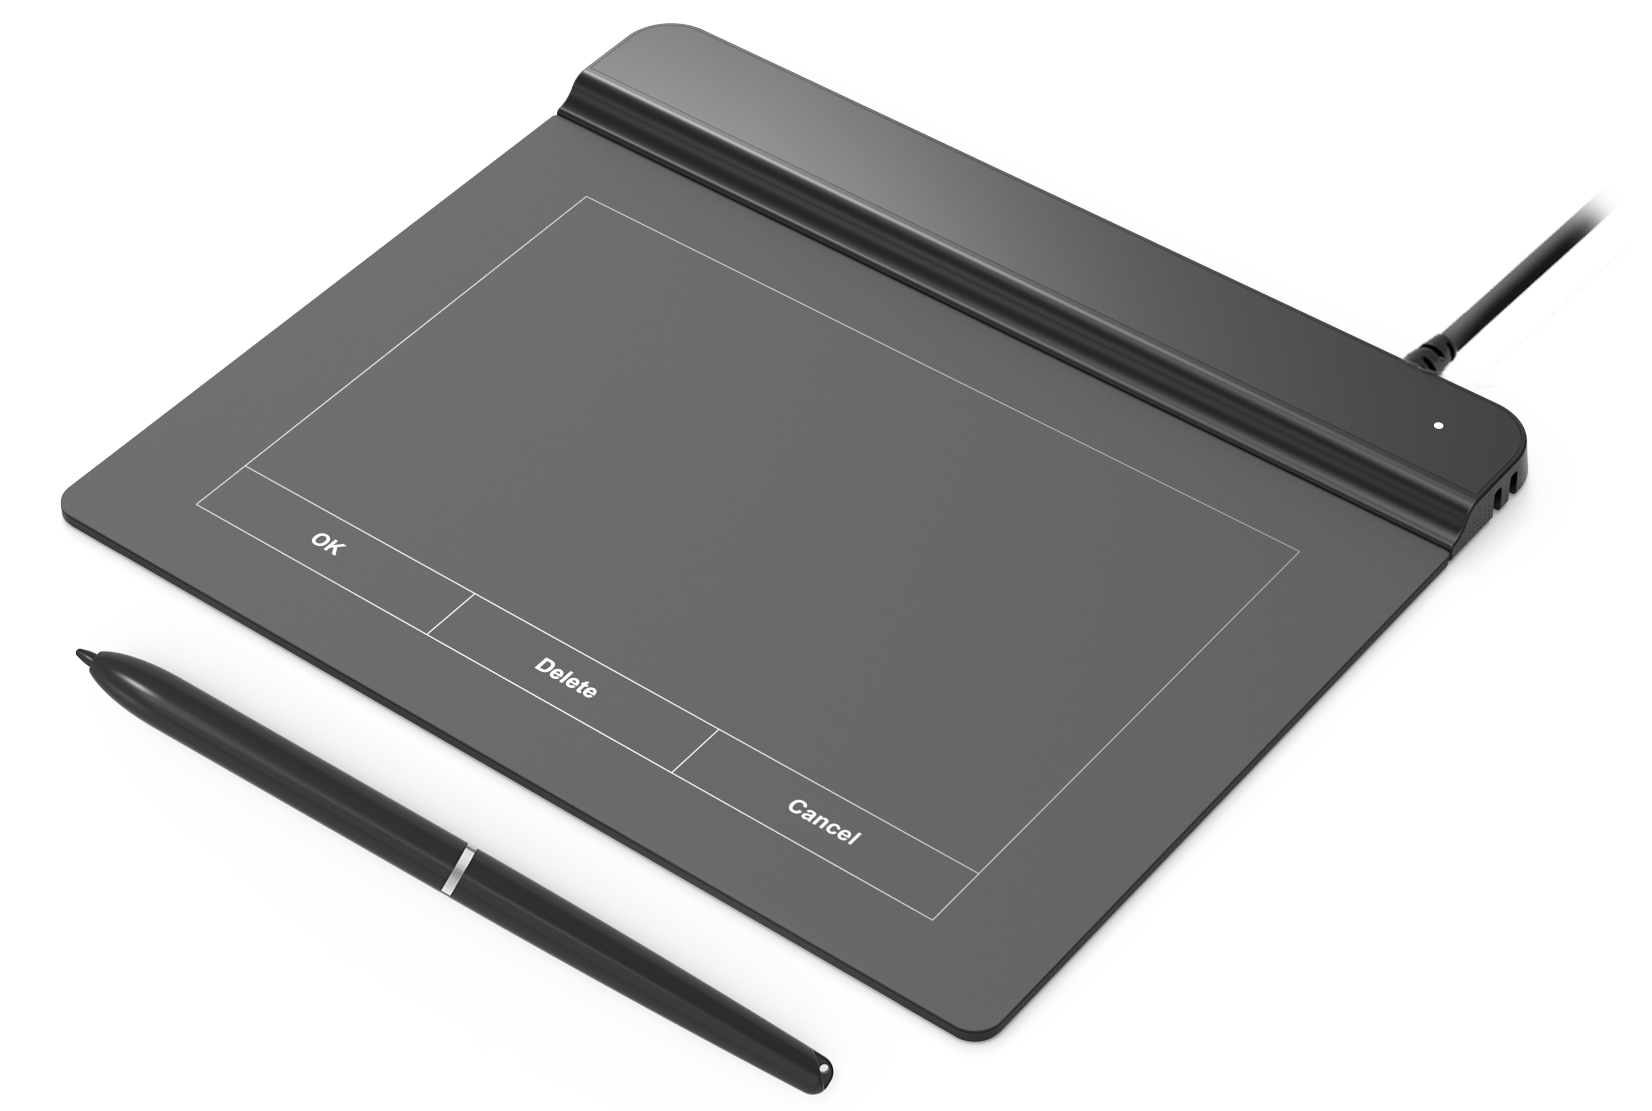 Ugee-High-quality Electronic Signature and Digital Pad For Signing Factory-4